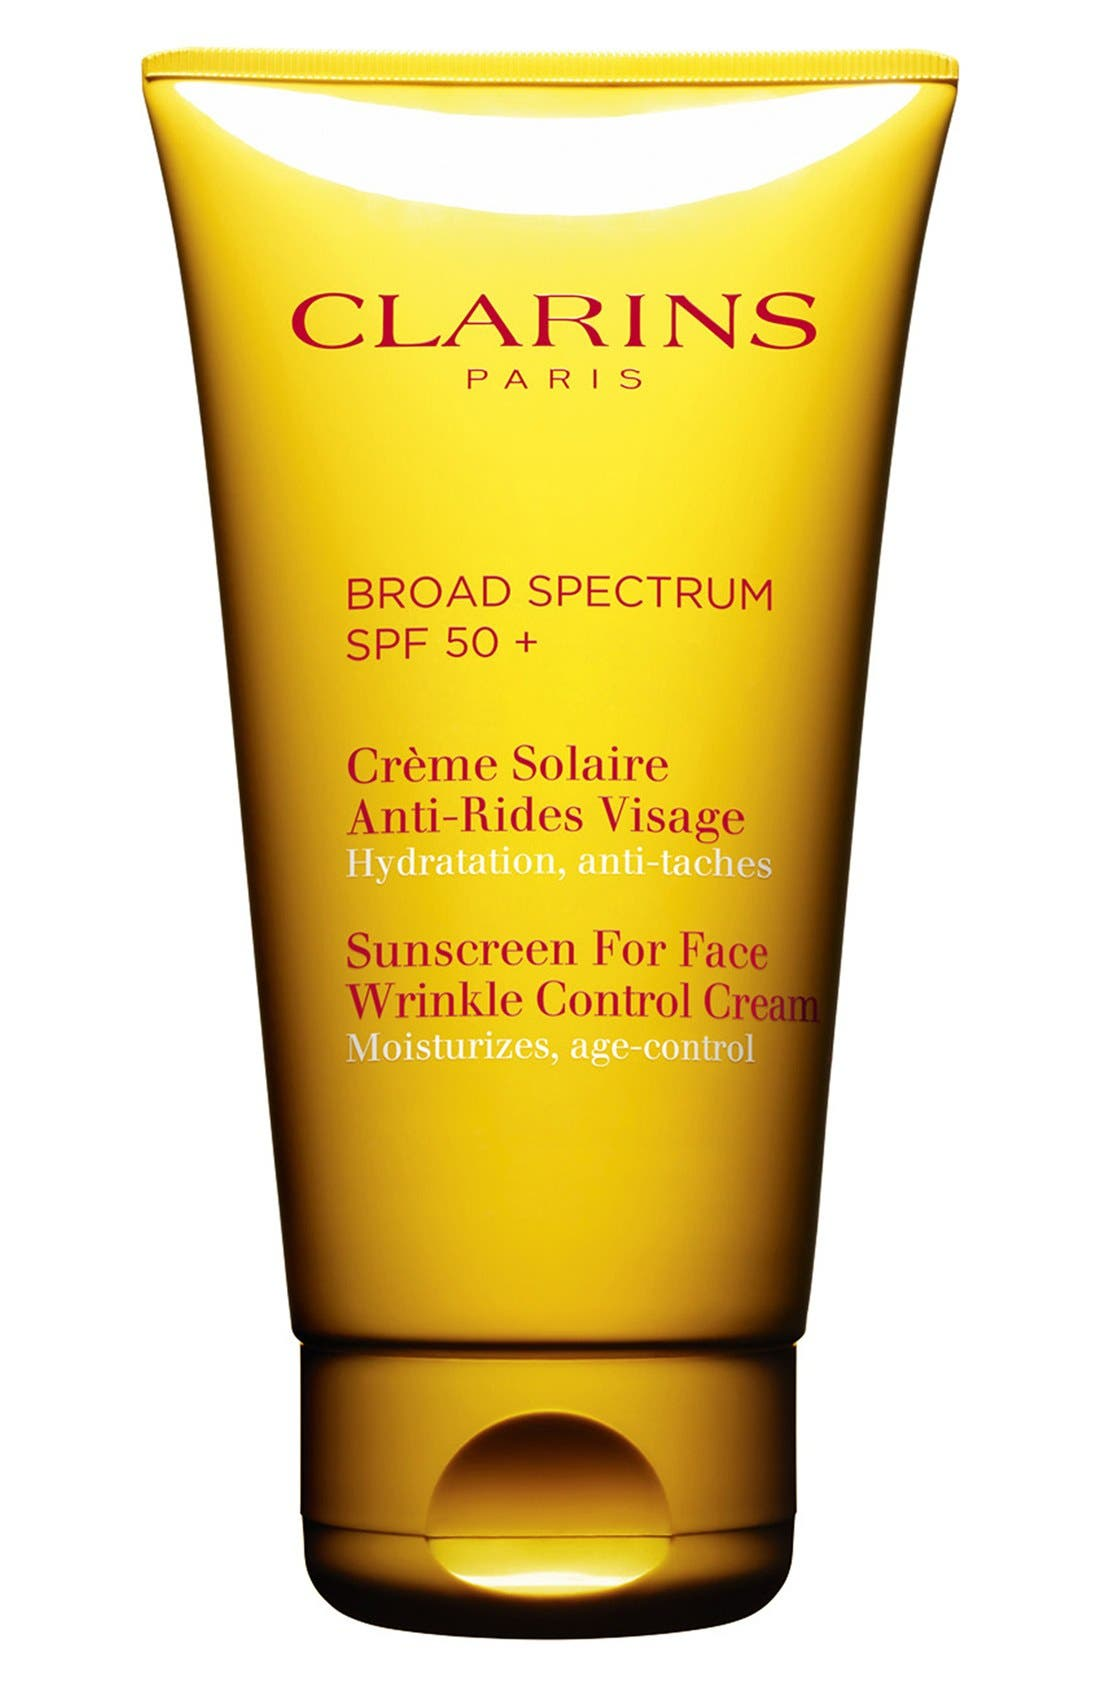 Clarins 'Sunscreen for Face' Wrinkle Control Cream SPF 50+